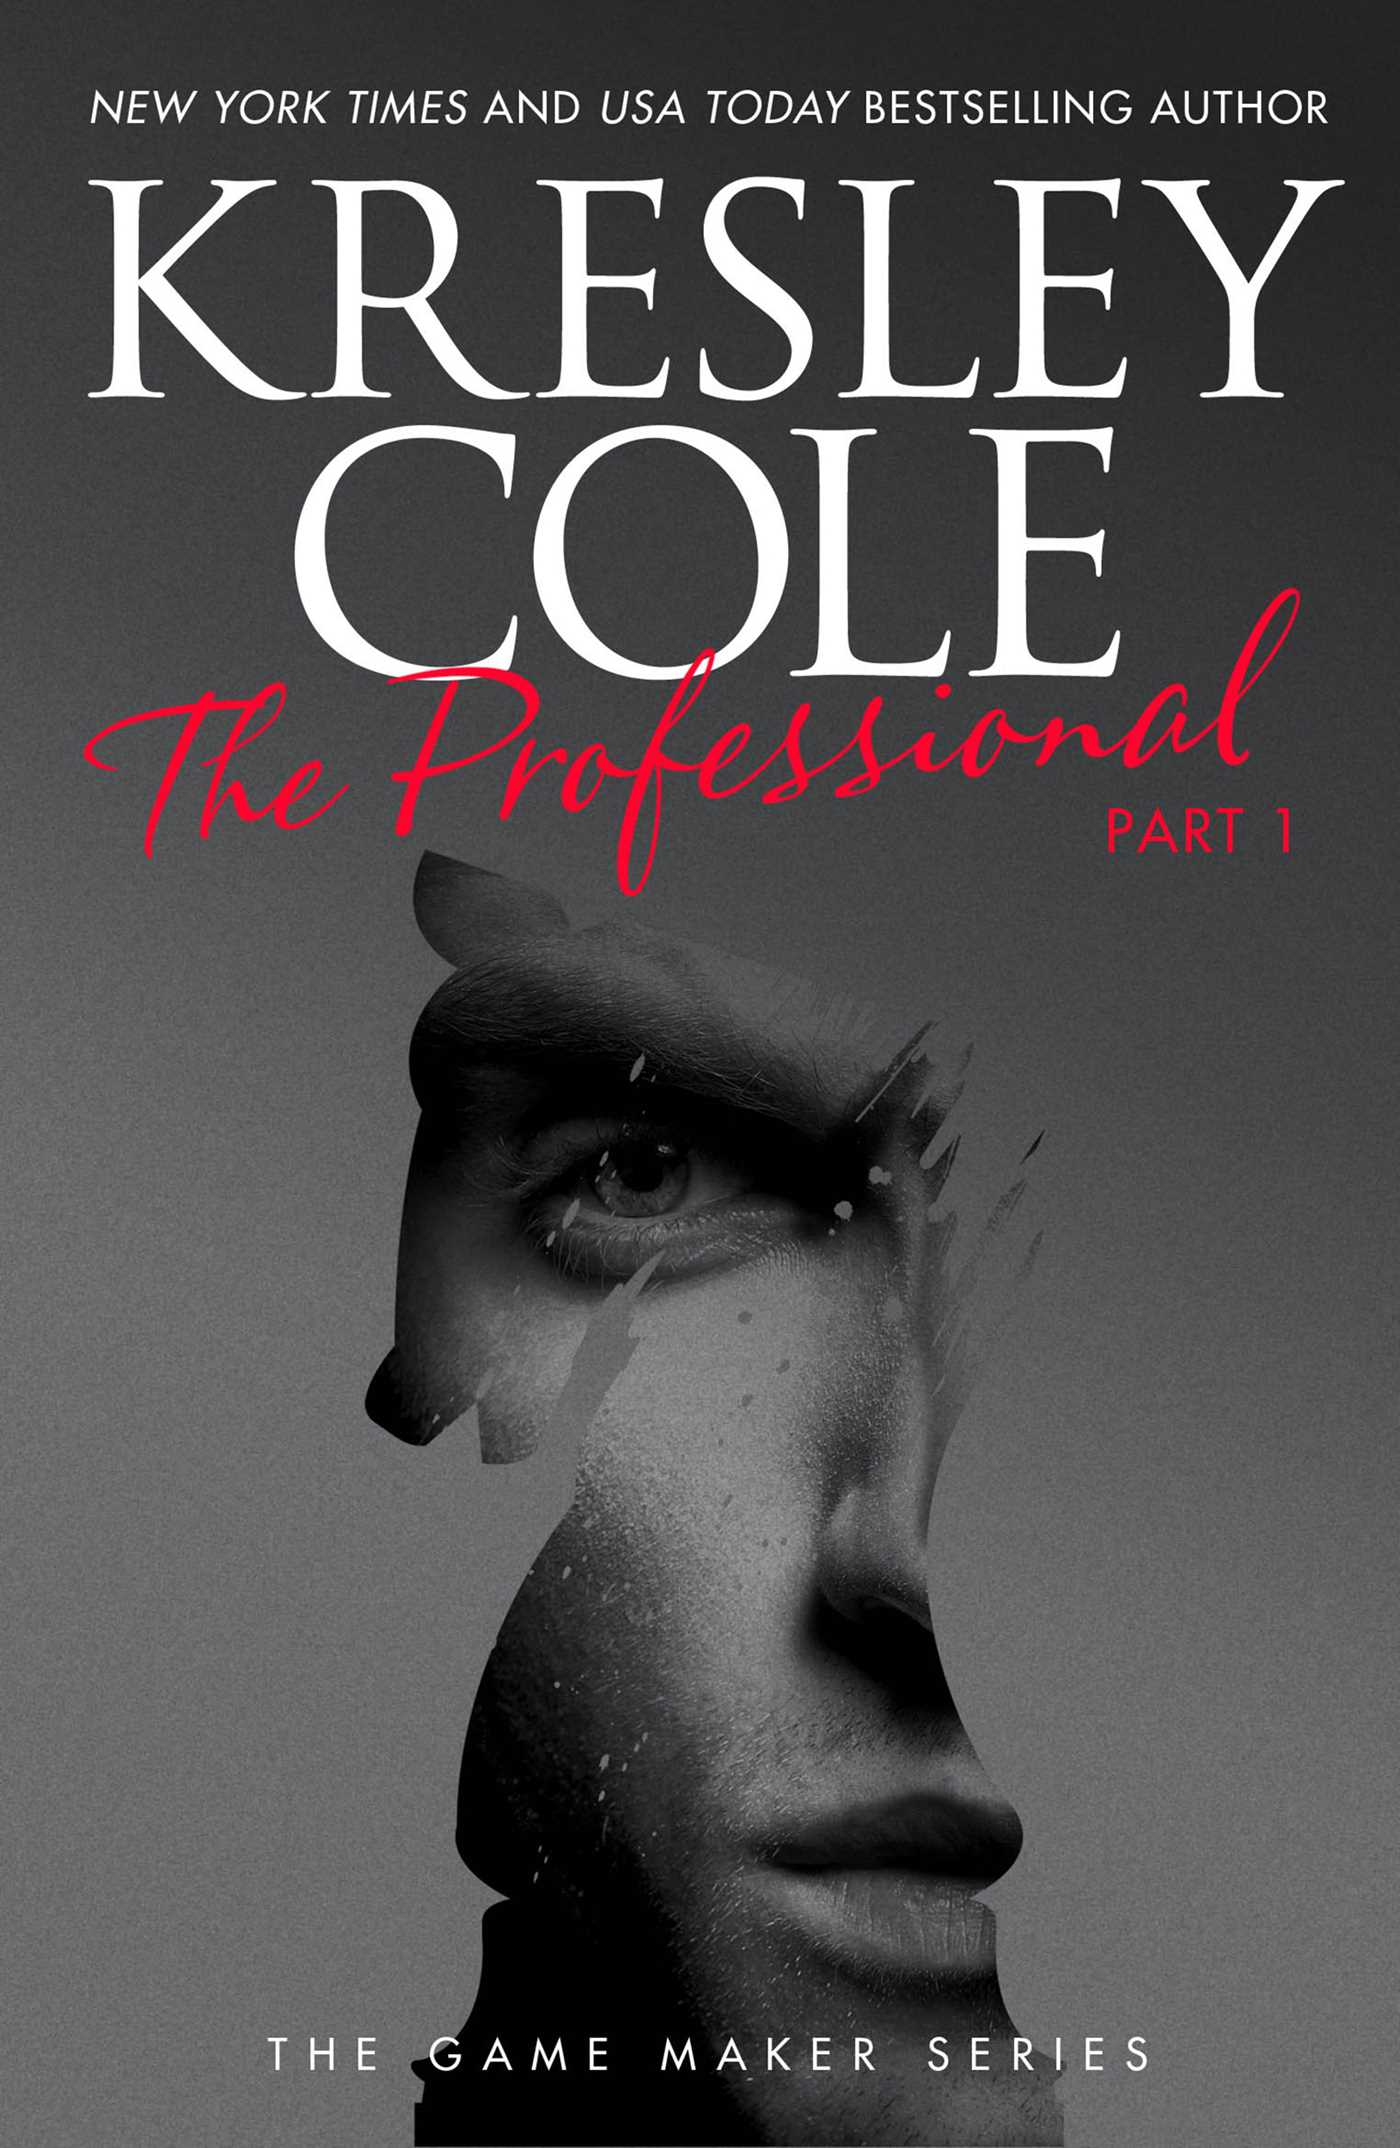 The professional part 1 ebook by kresley cole official publisher ebook original ebook 9781471133978 author photo jpg kresley cole fandeluxe Images